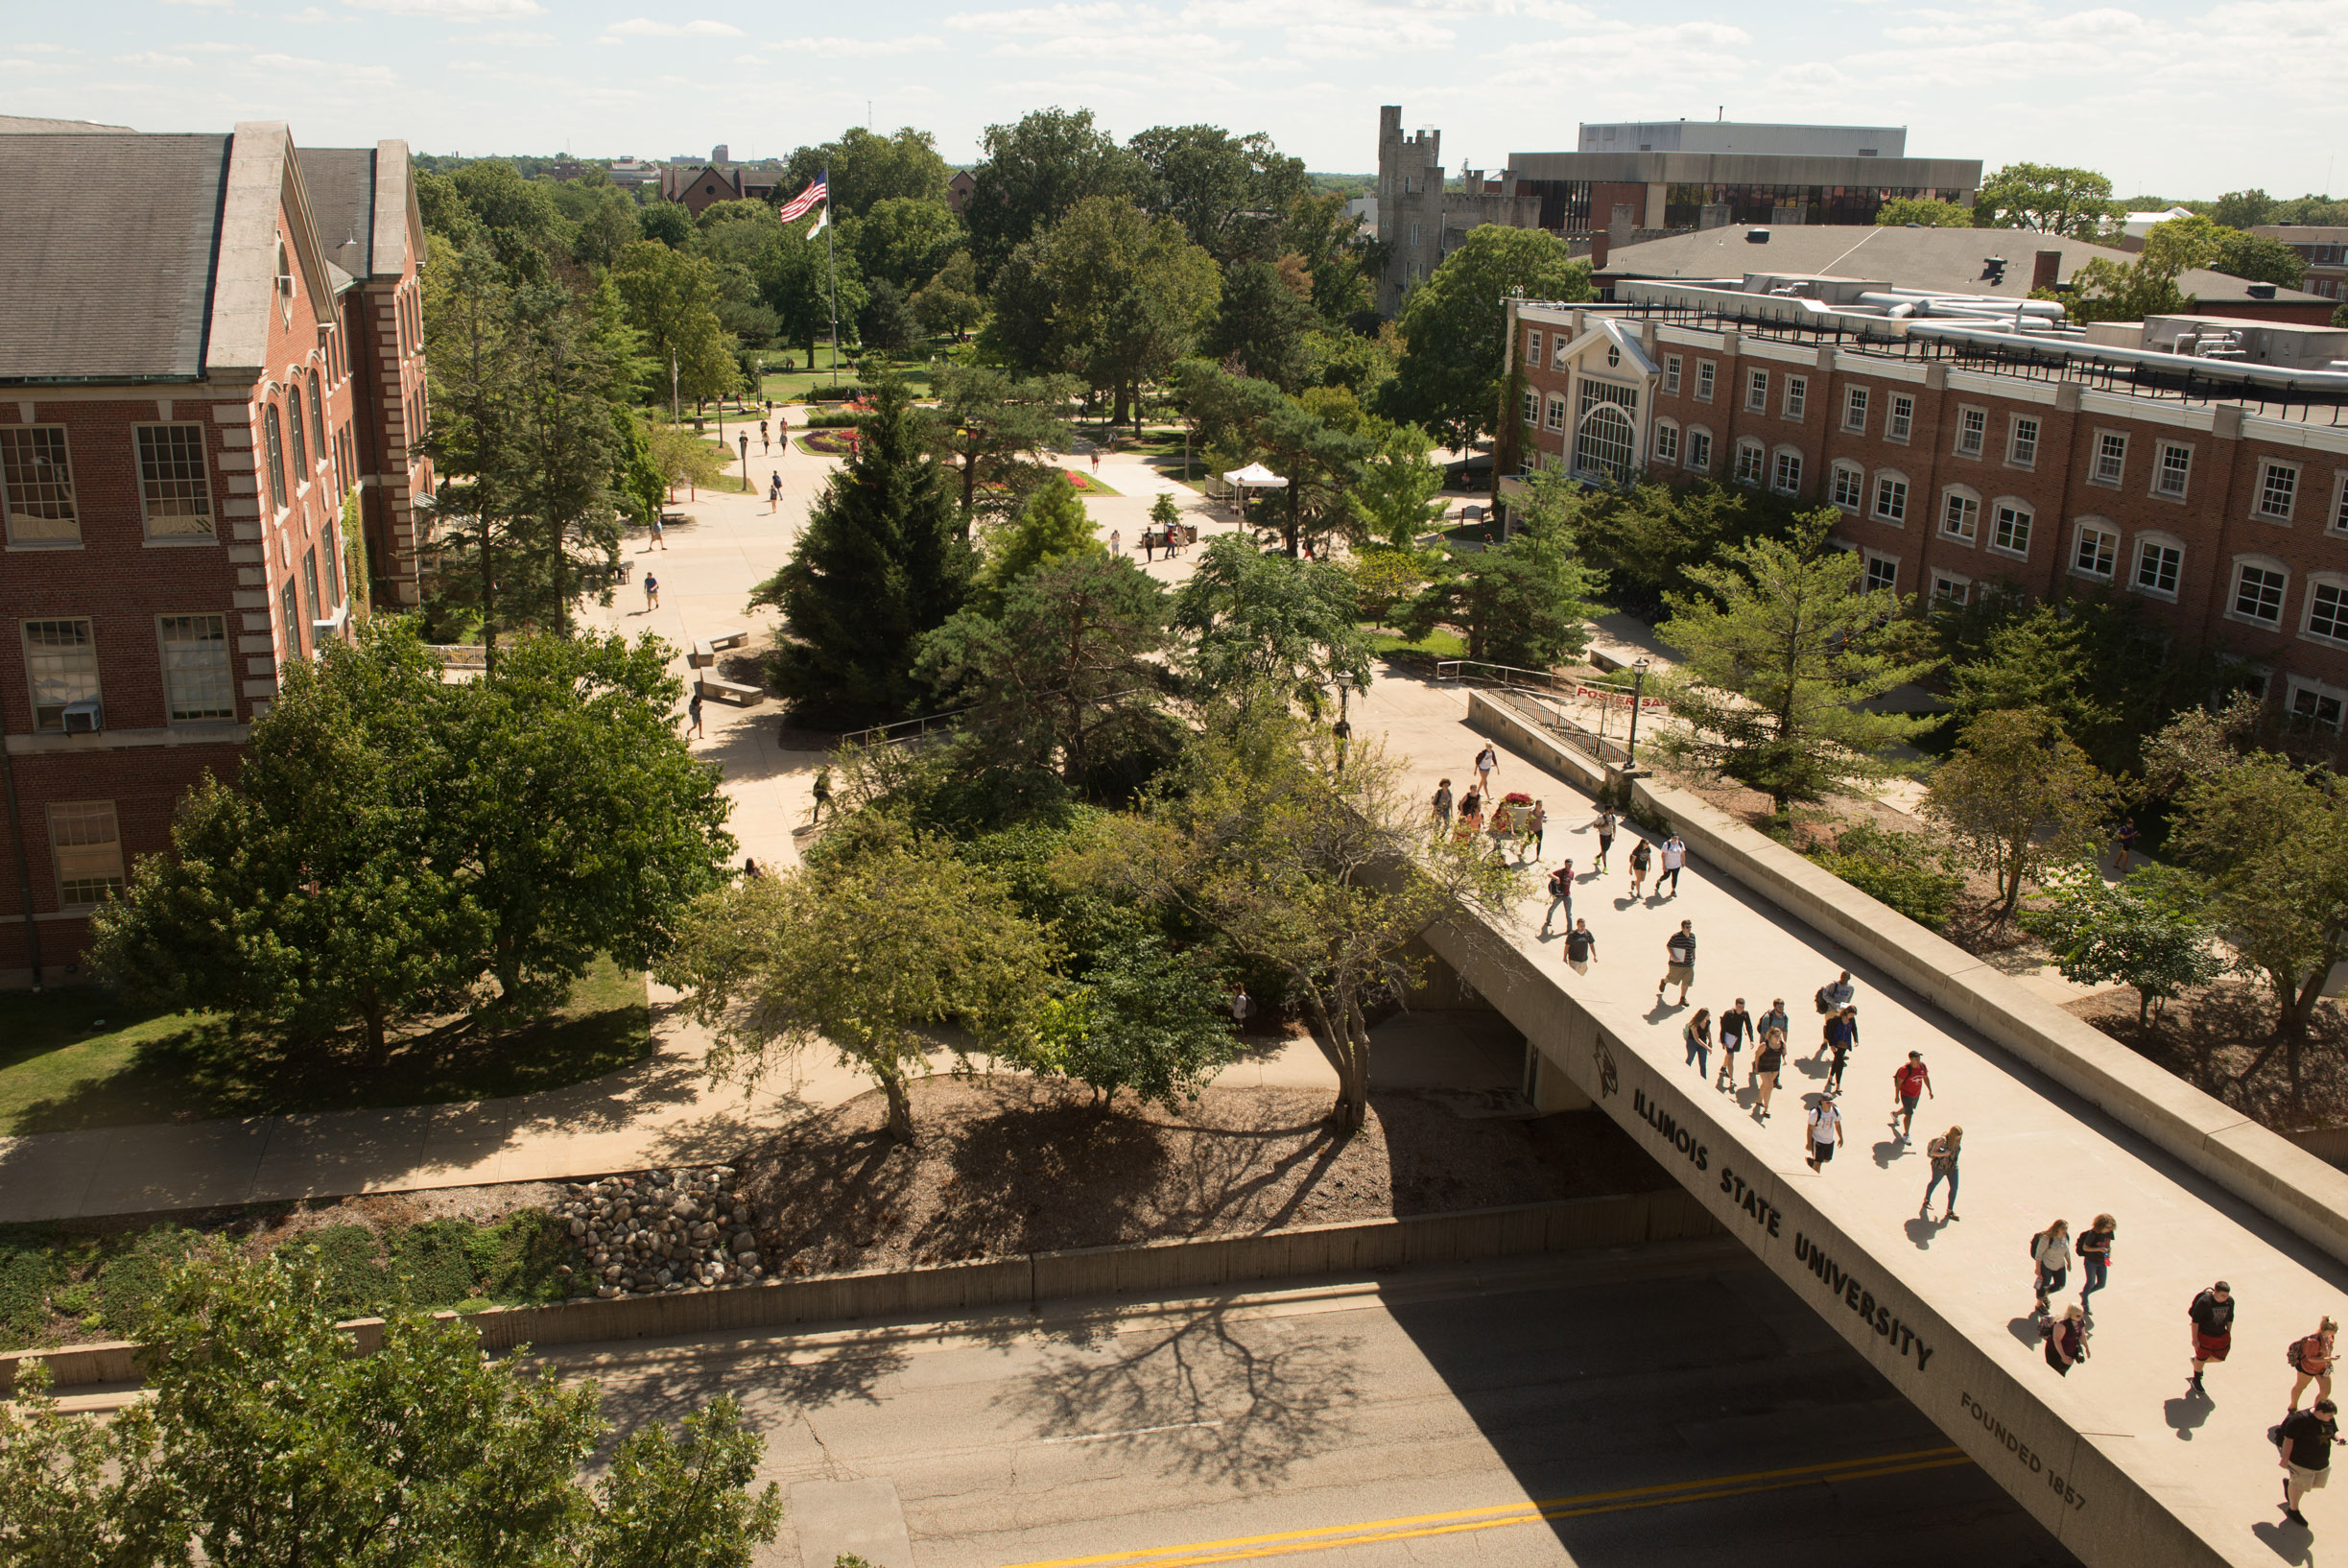 Looking down on the College Avenue overpass from Milner Library